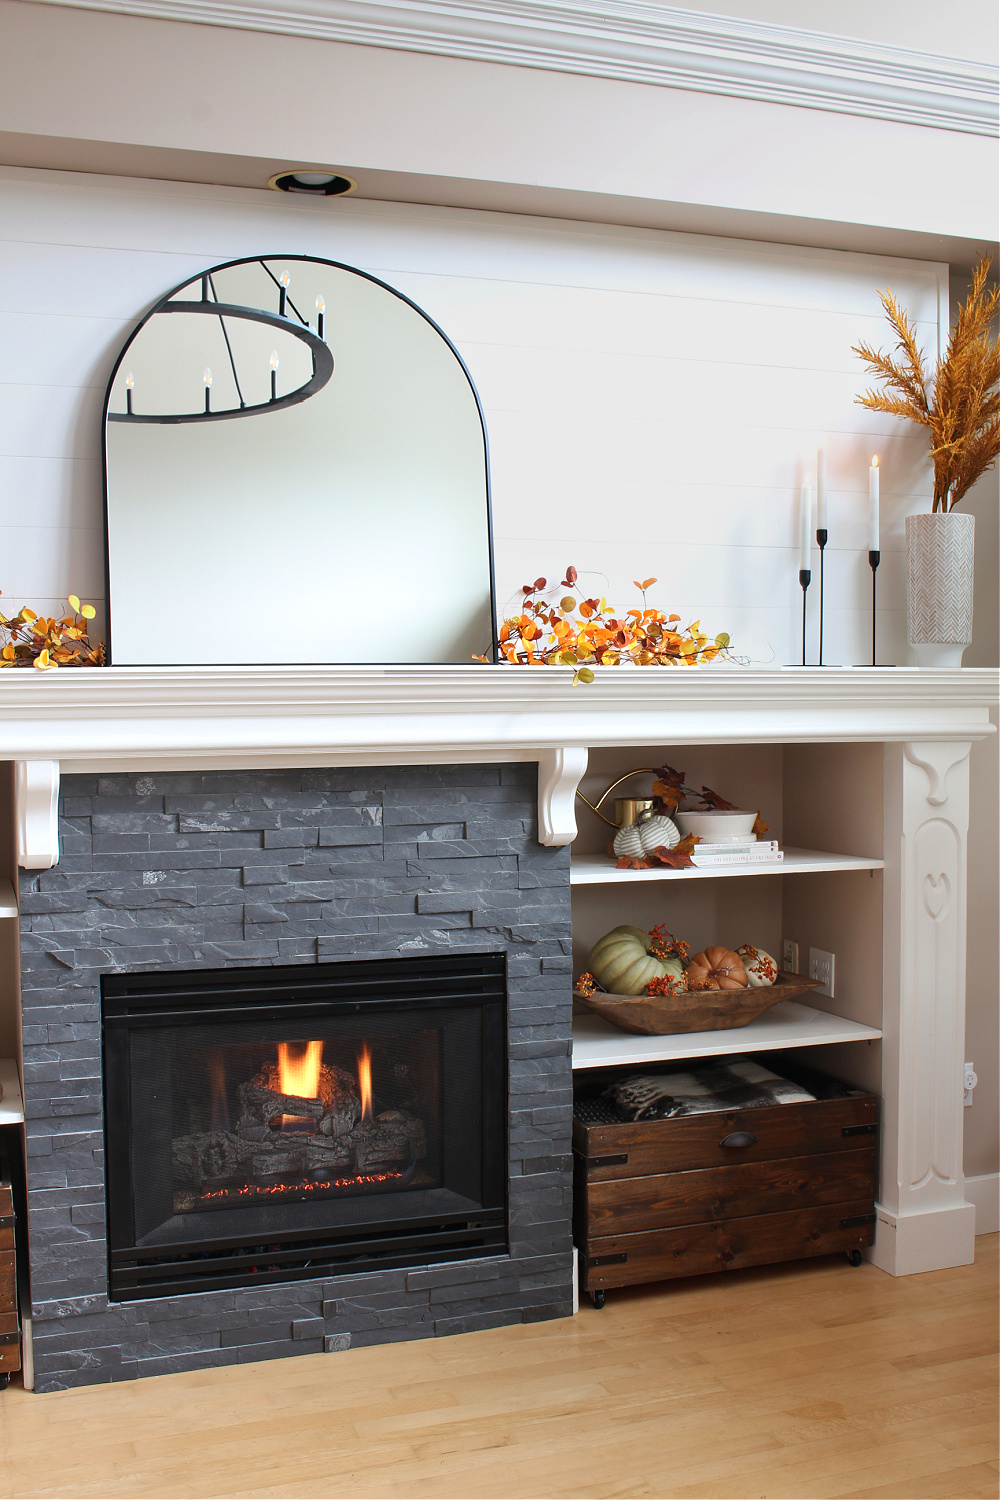 Pretty fall mantel decorating ideas with a white mantel.